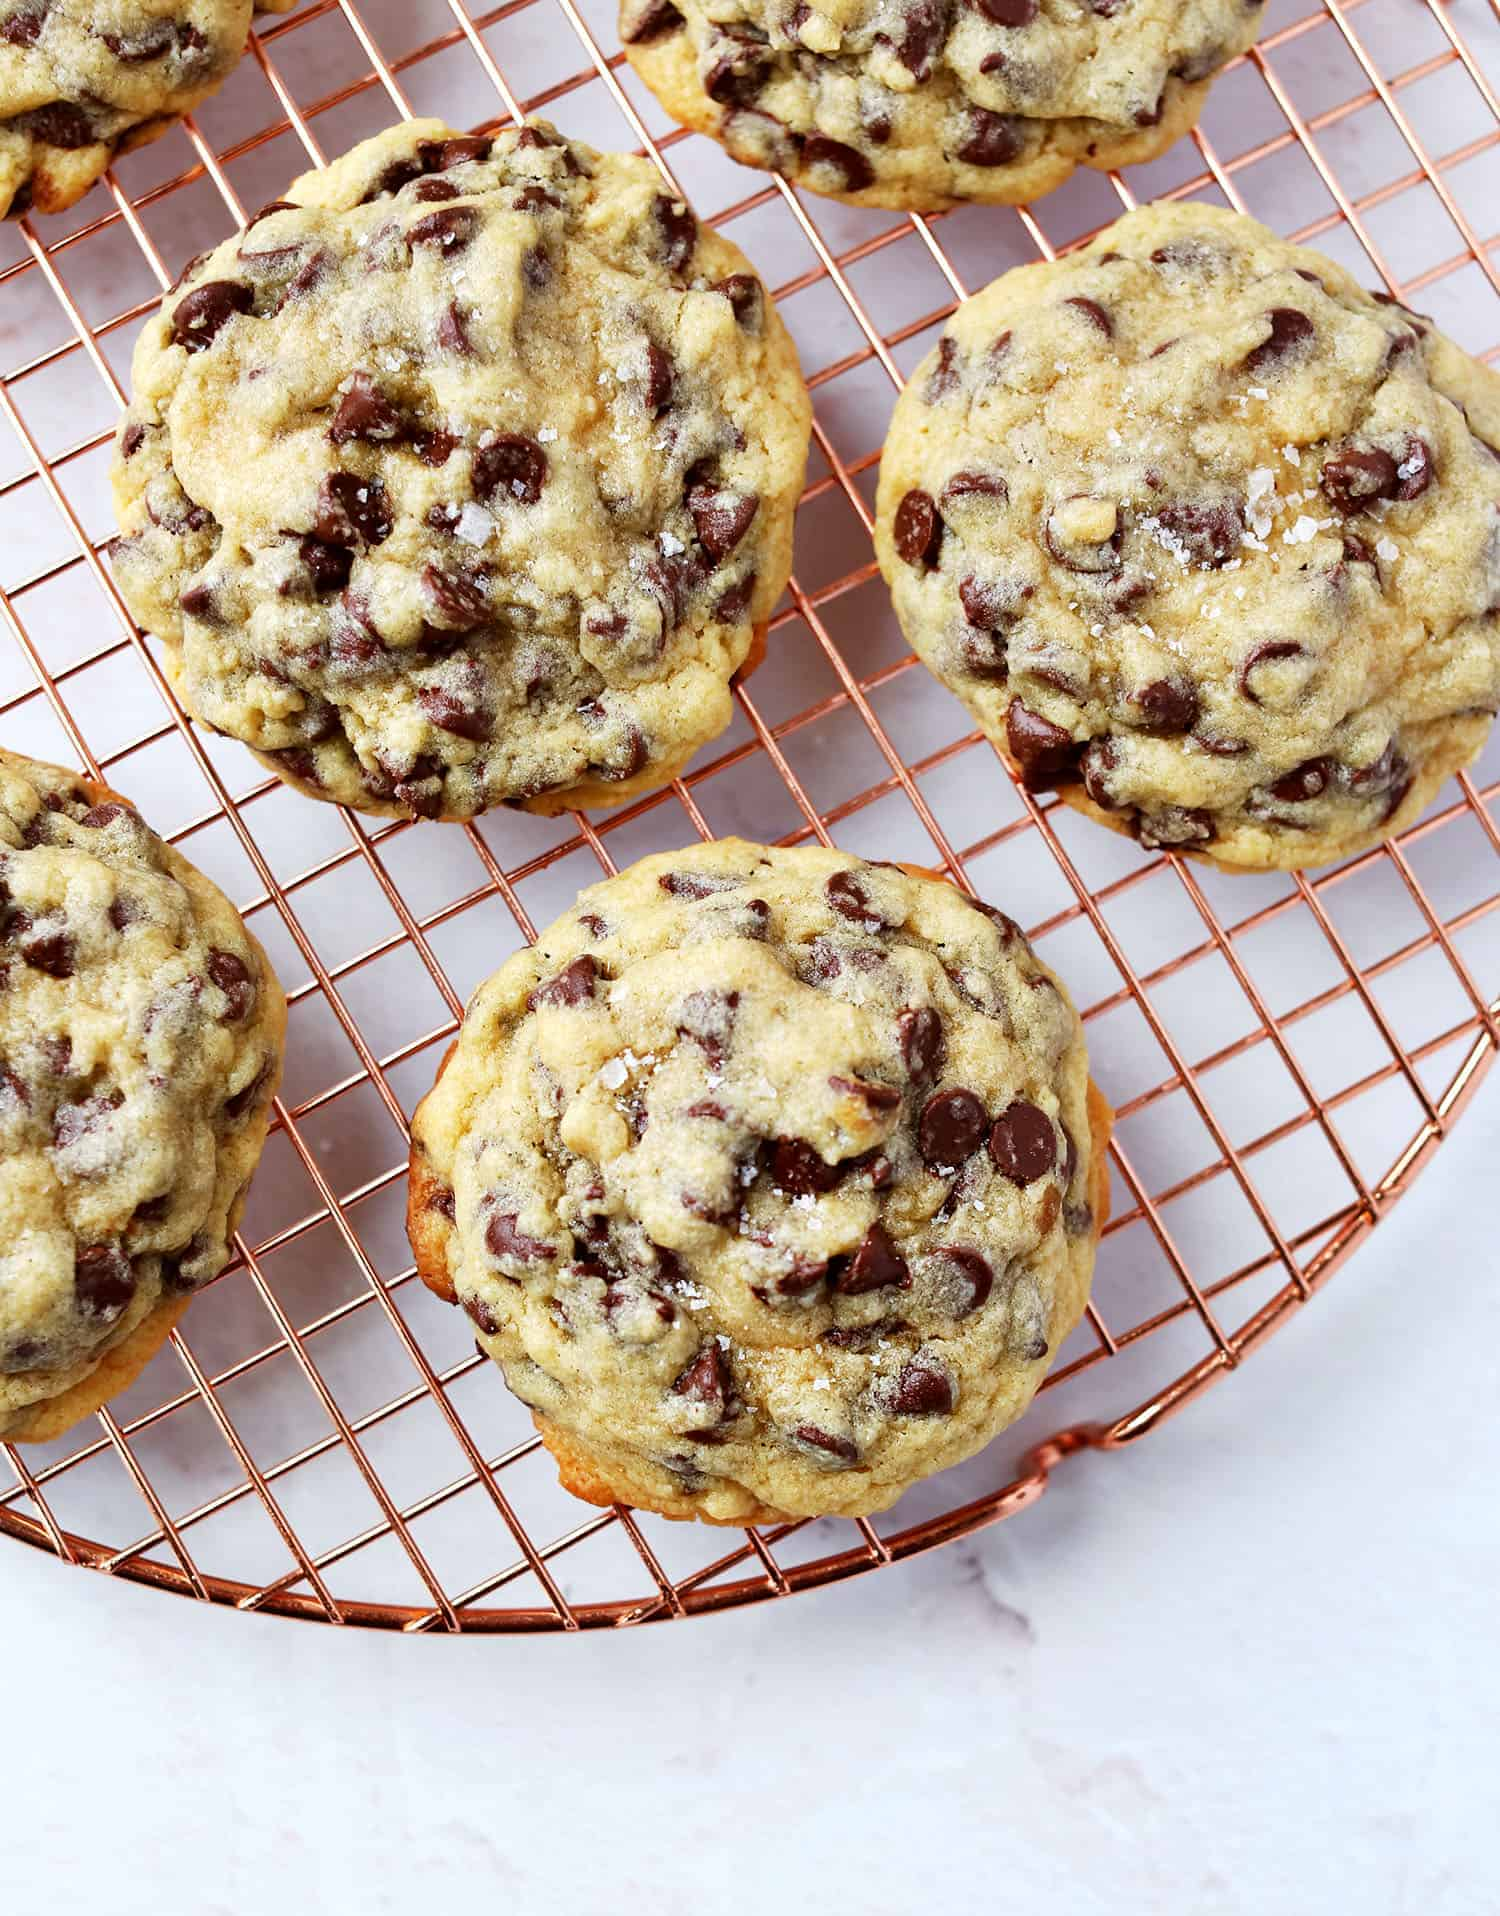 Oversized soft center chocolate chip cookies